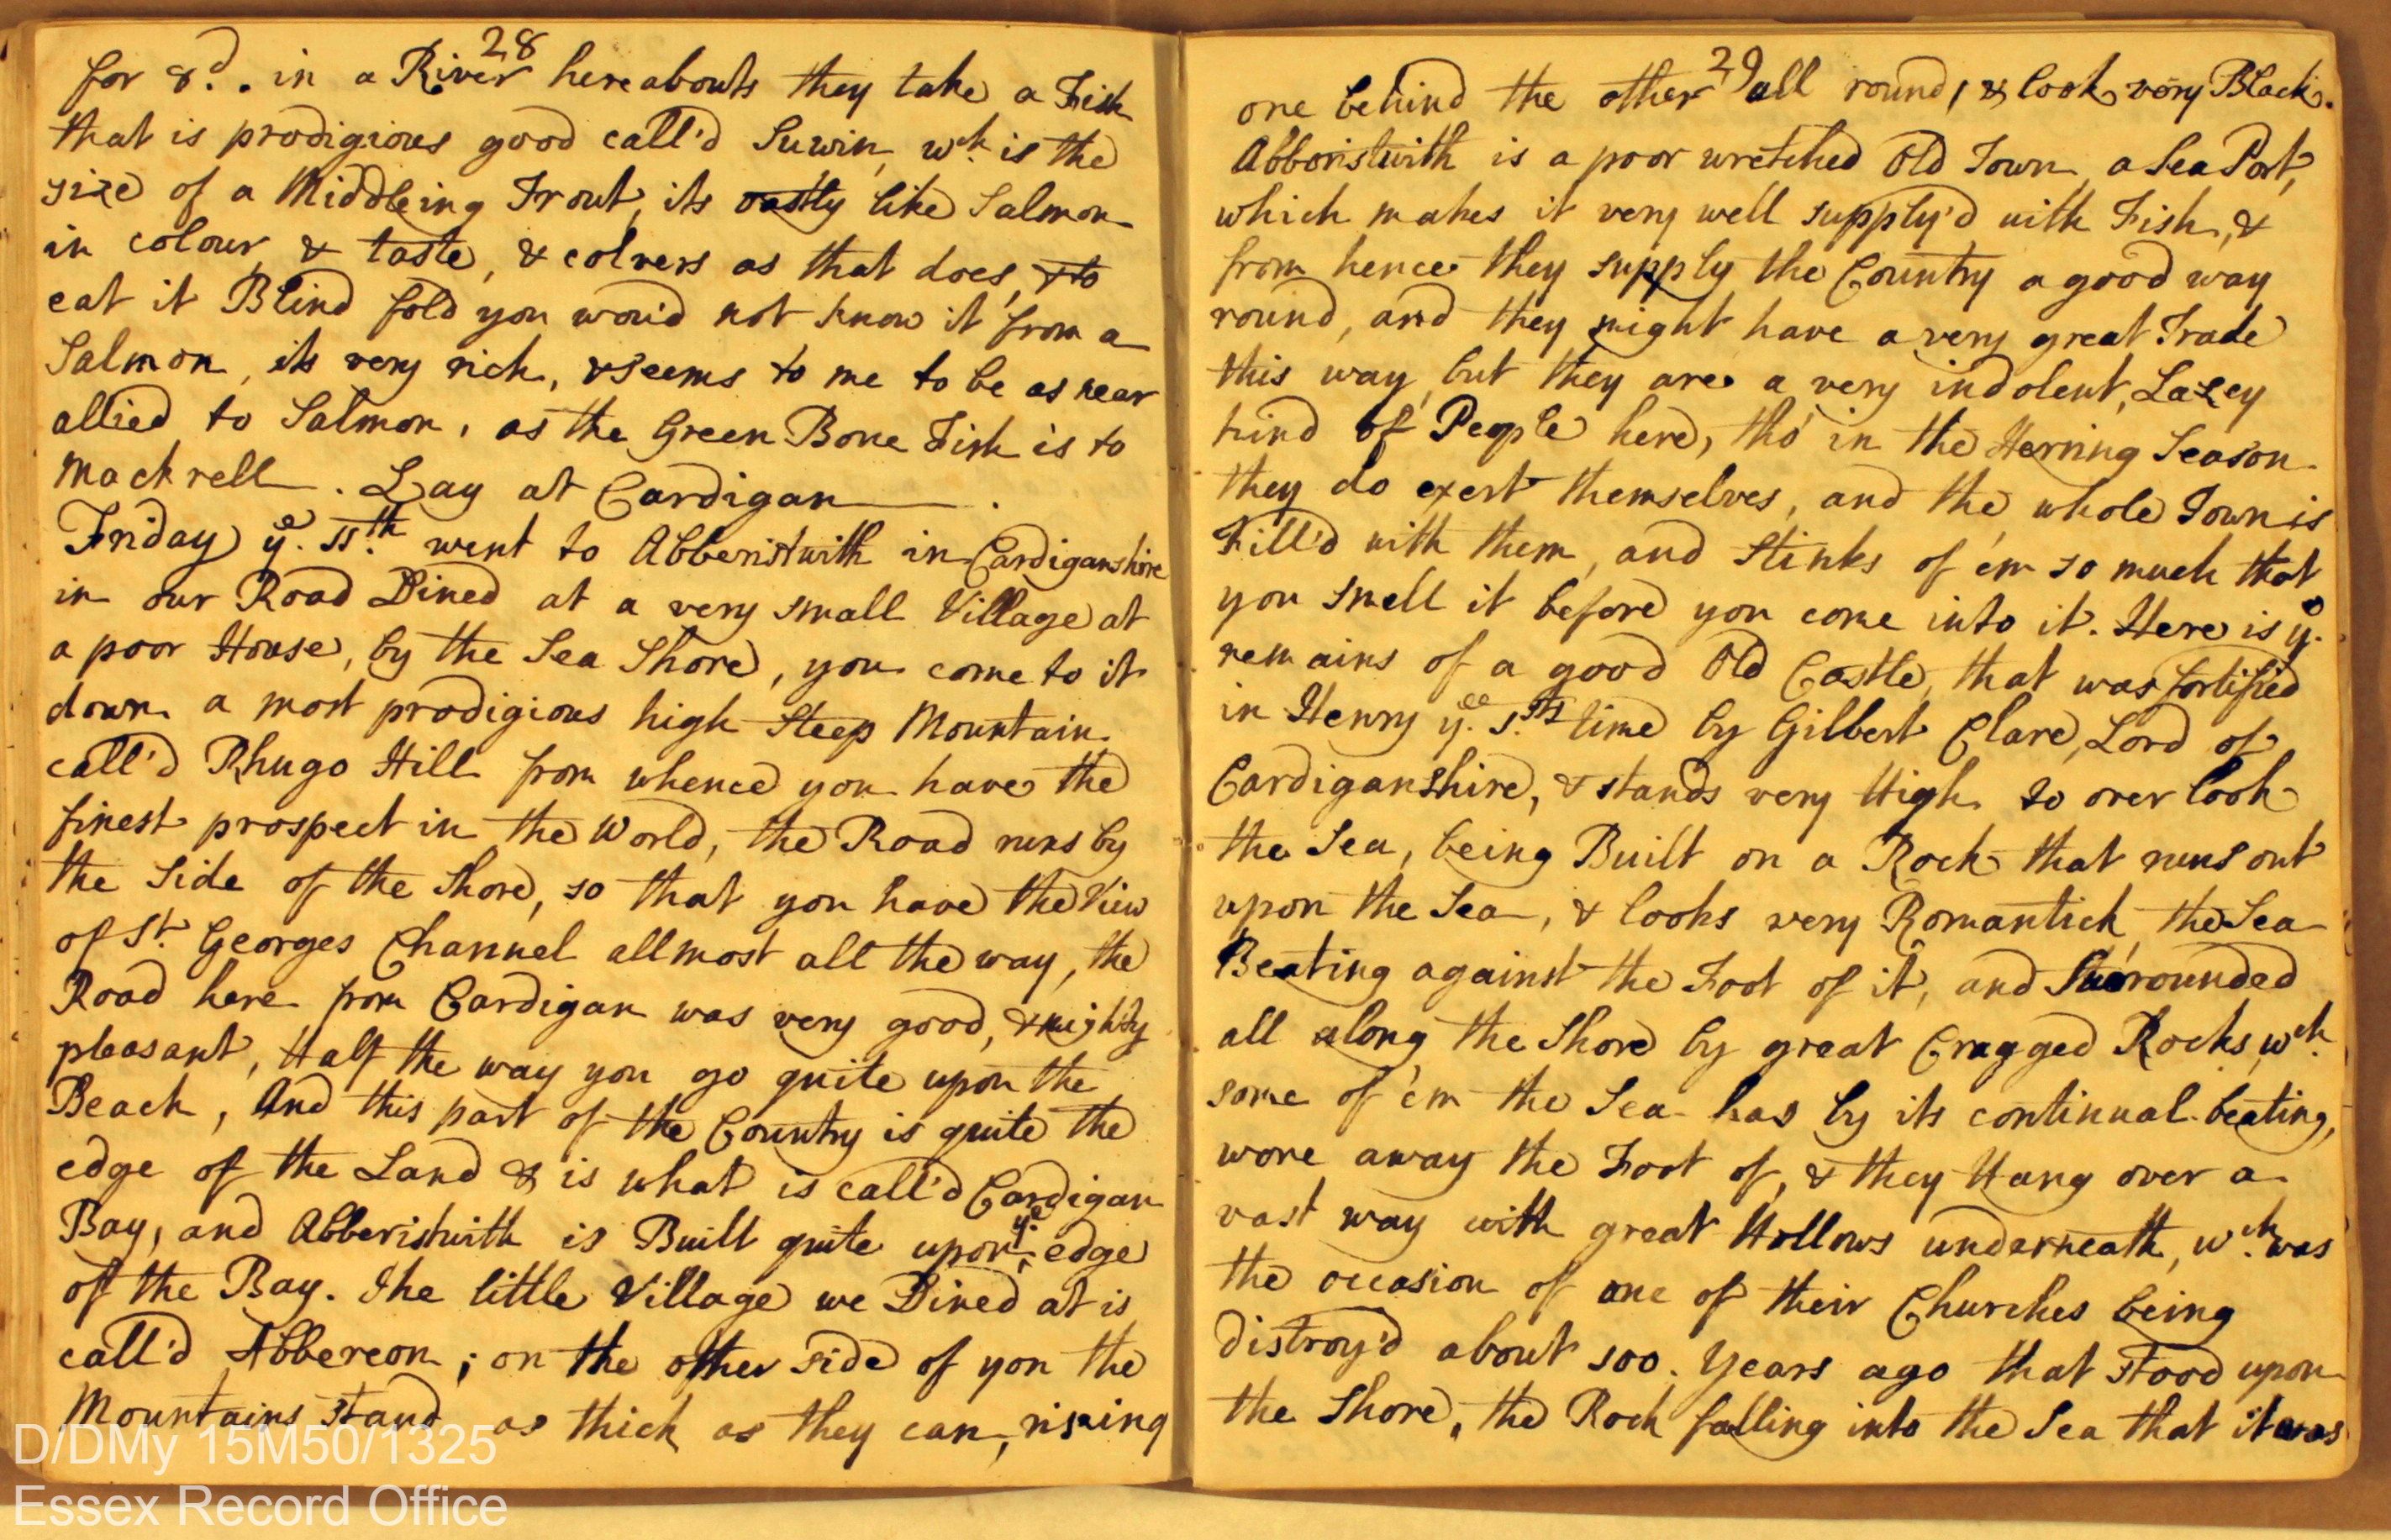 Digital image of page from handwritten travel journal